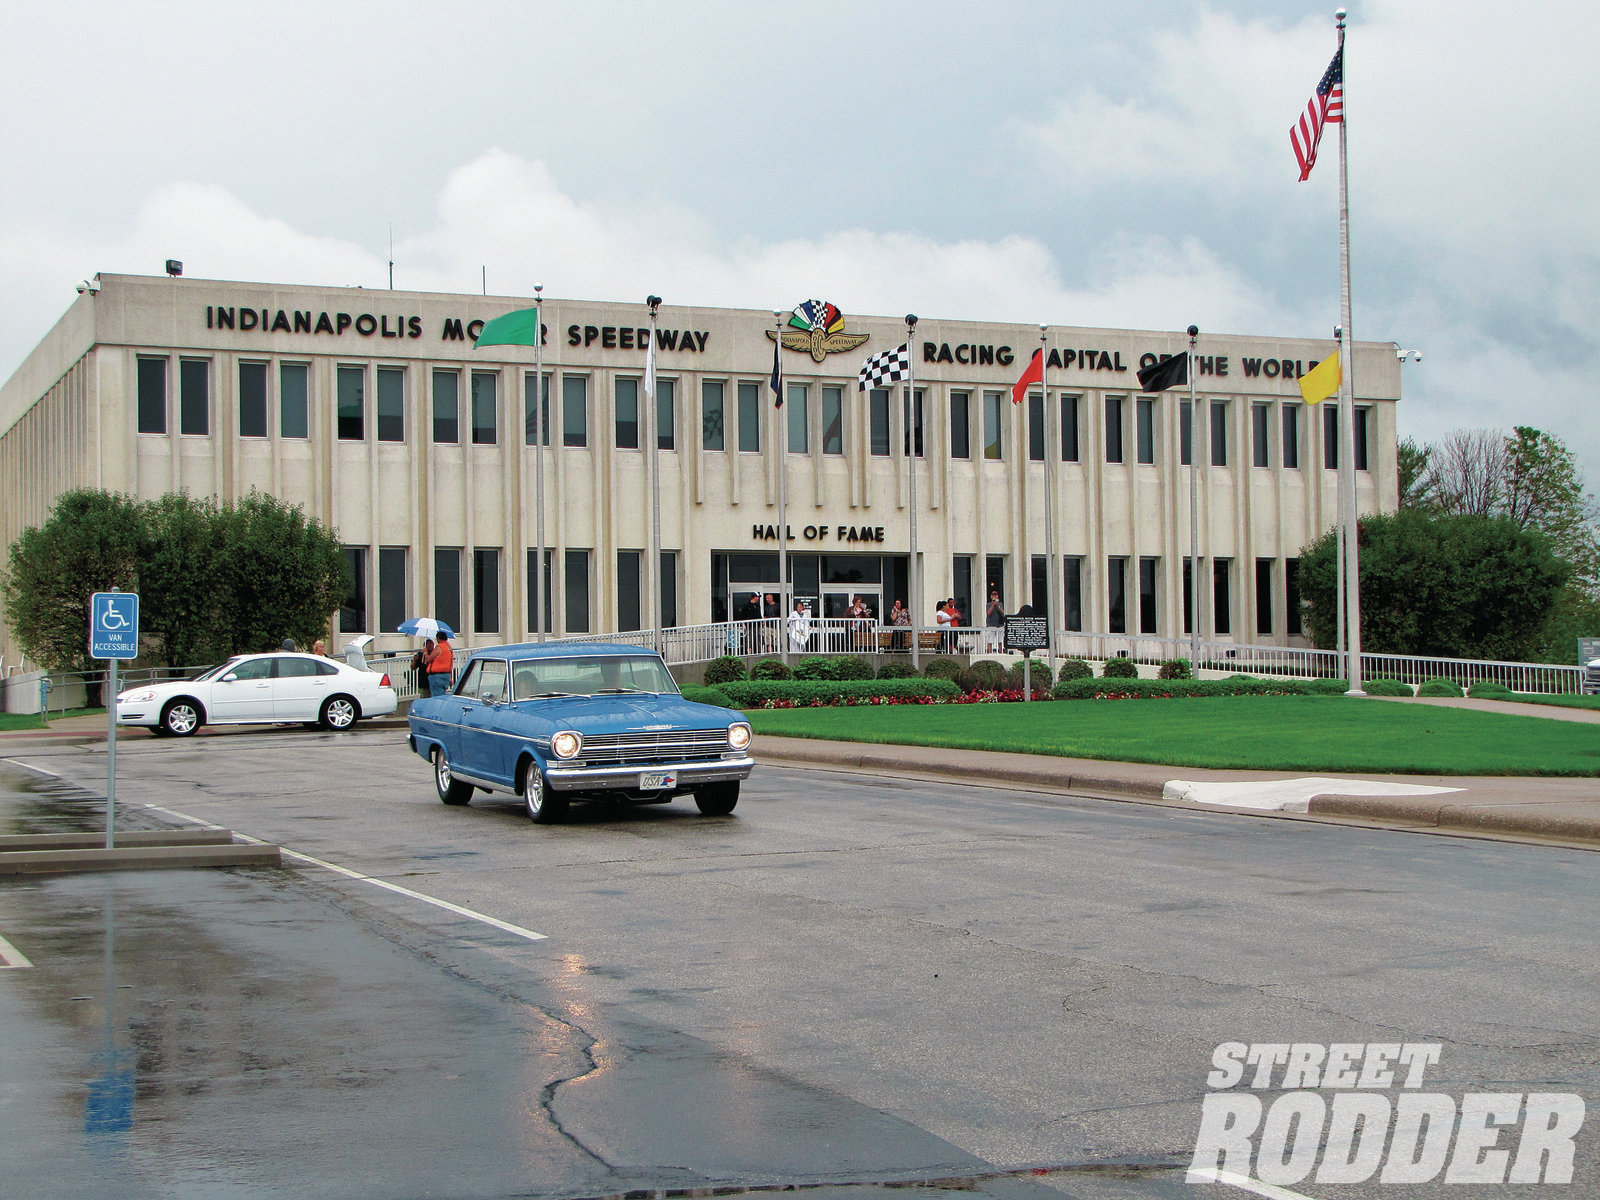 A rainy Sunday afternoon was the perfect time to visit the Indianapolis Motor Speedway. In the middle of the infield the Hall of Fame and Museum holds treasures that tell the story of this historic facility.